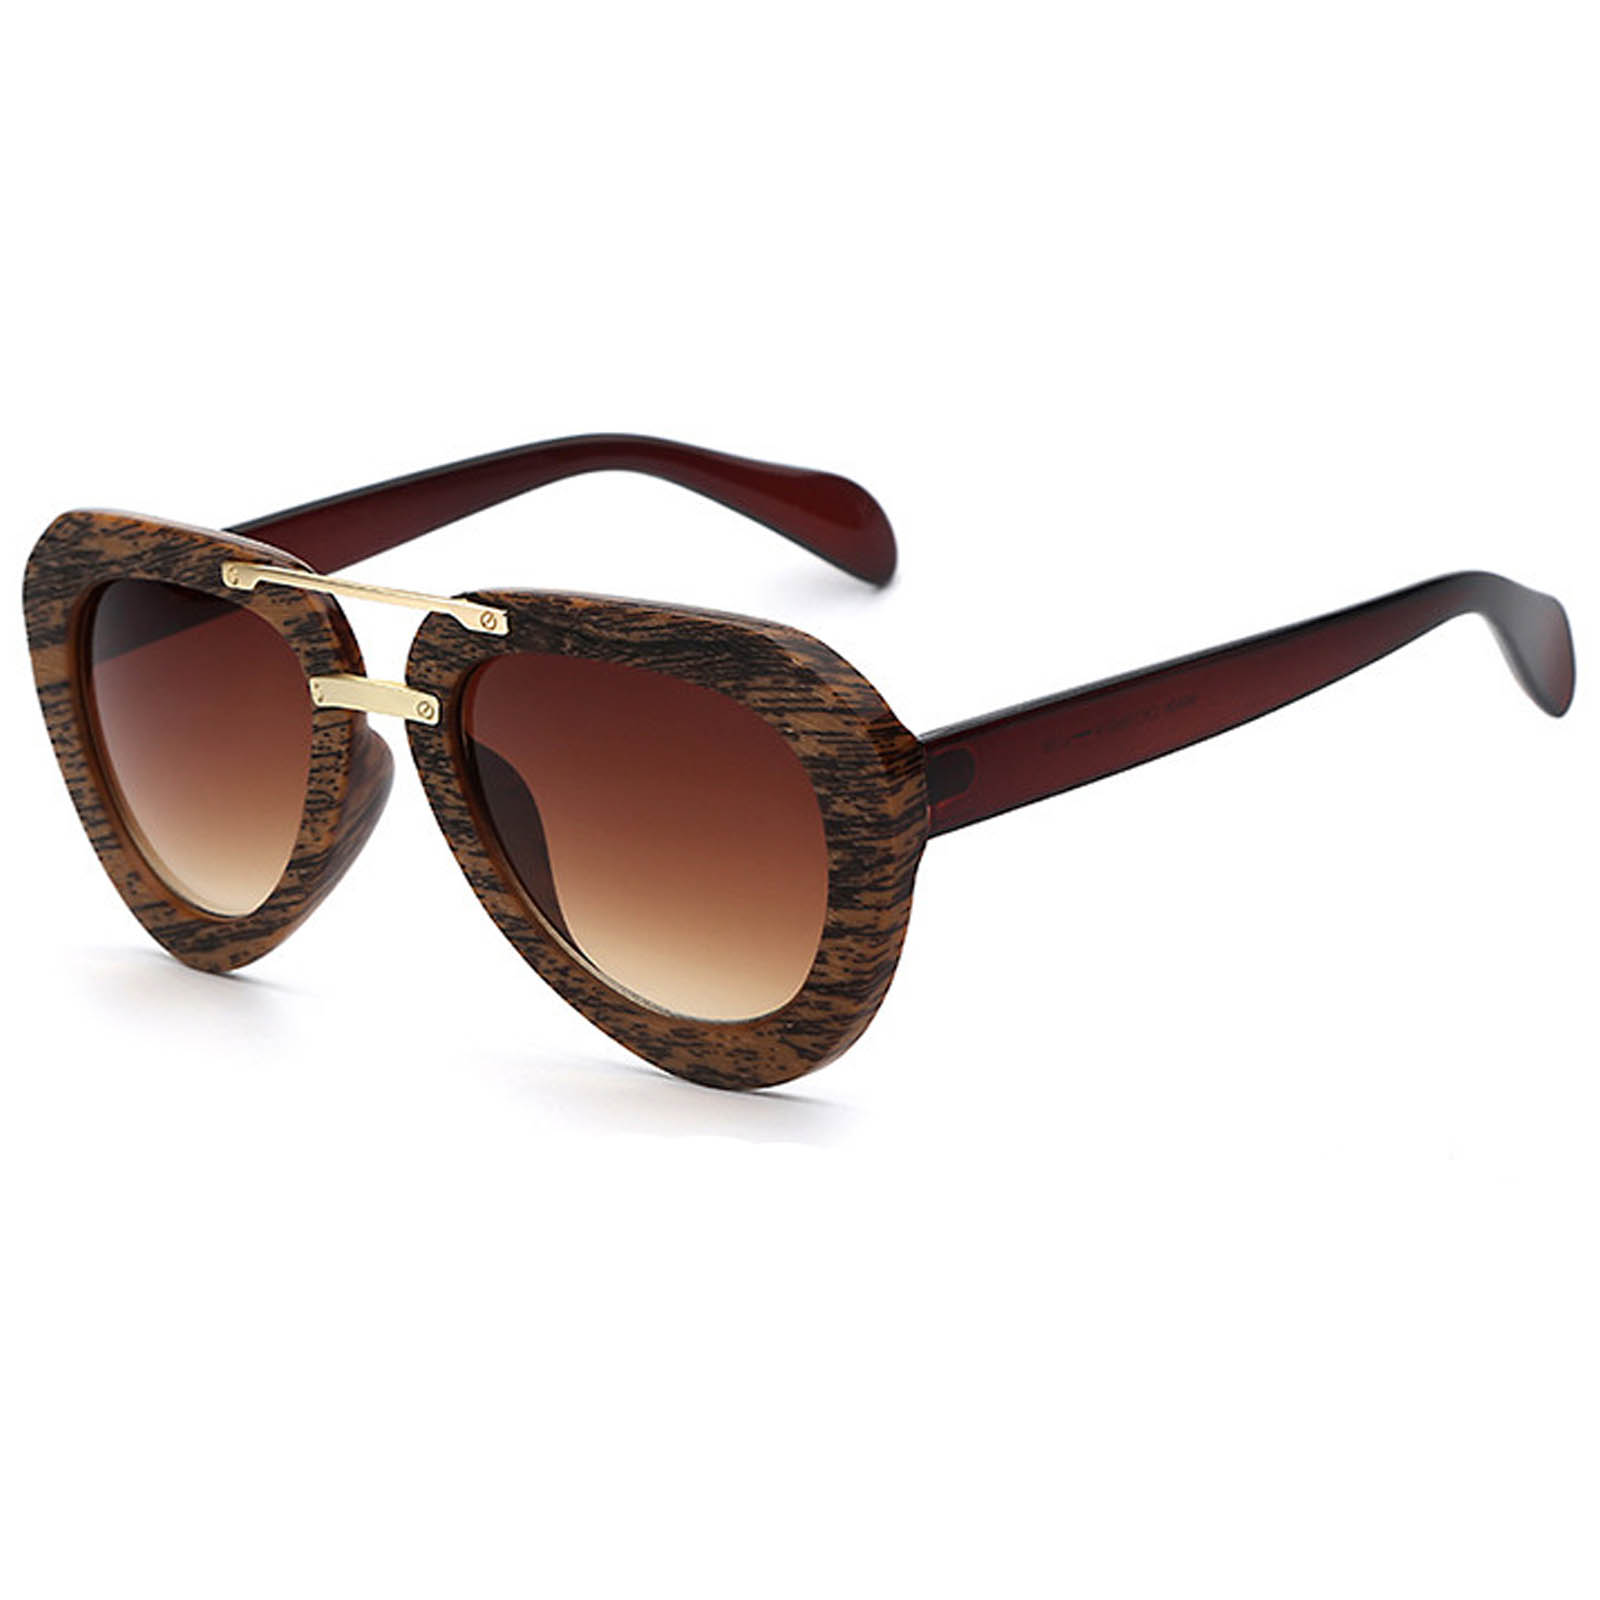 OWL ® 028 C6 Aviator Eyewear Sunglasses Women's Men's Plastic Brown Frame Brown Lens One Pair